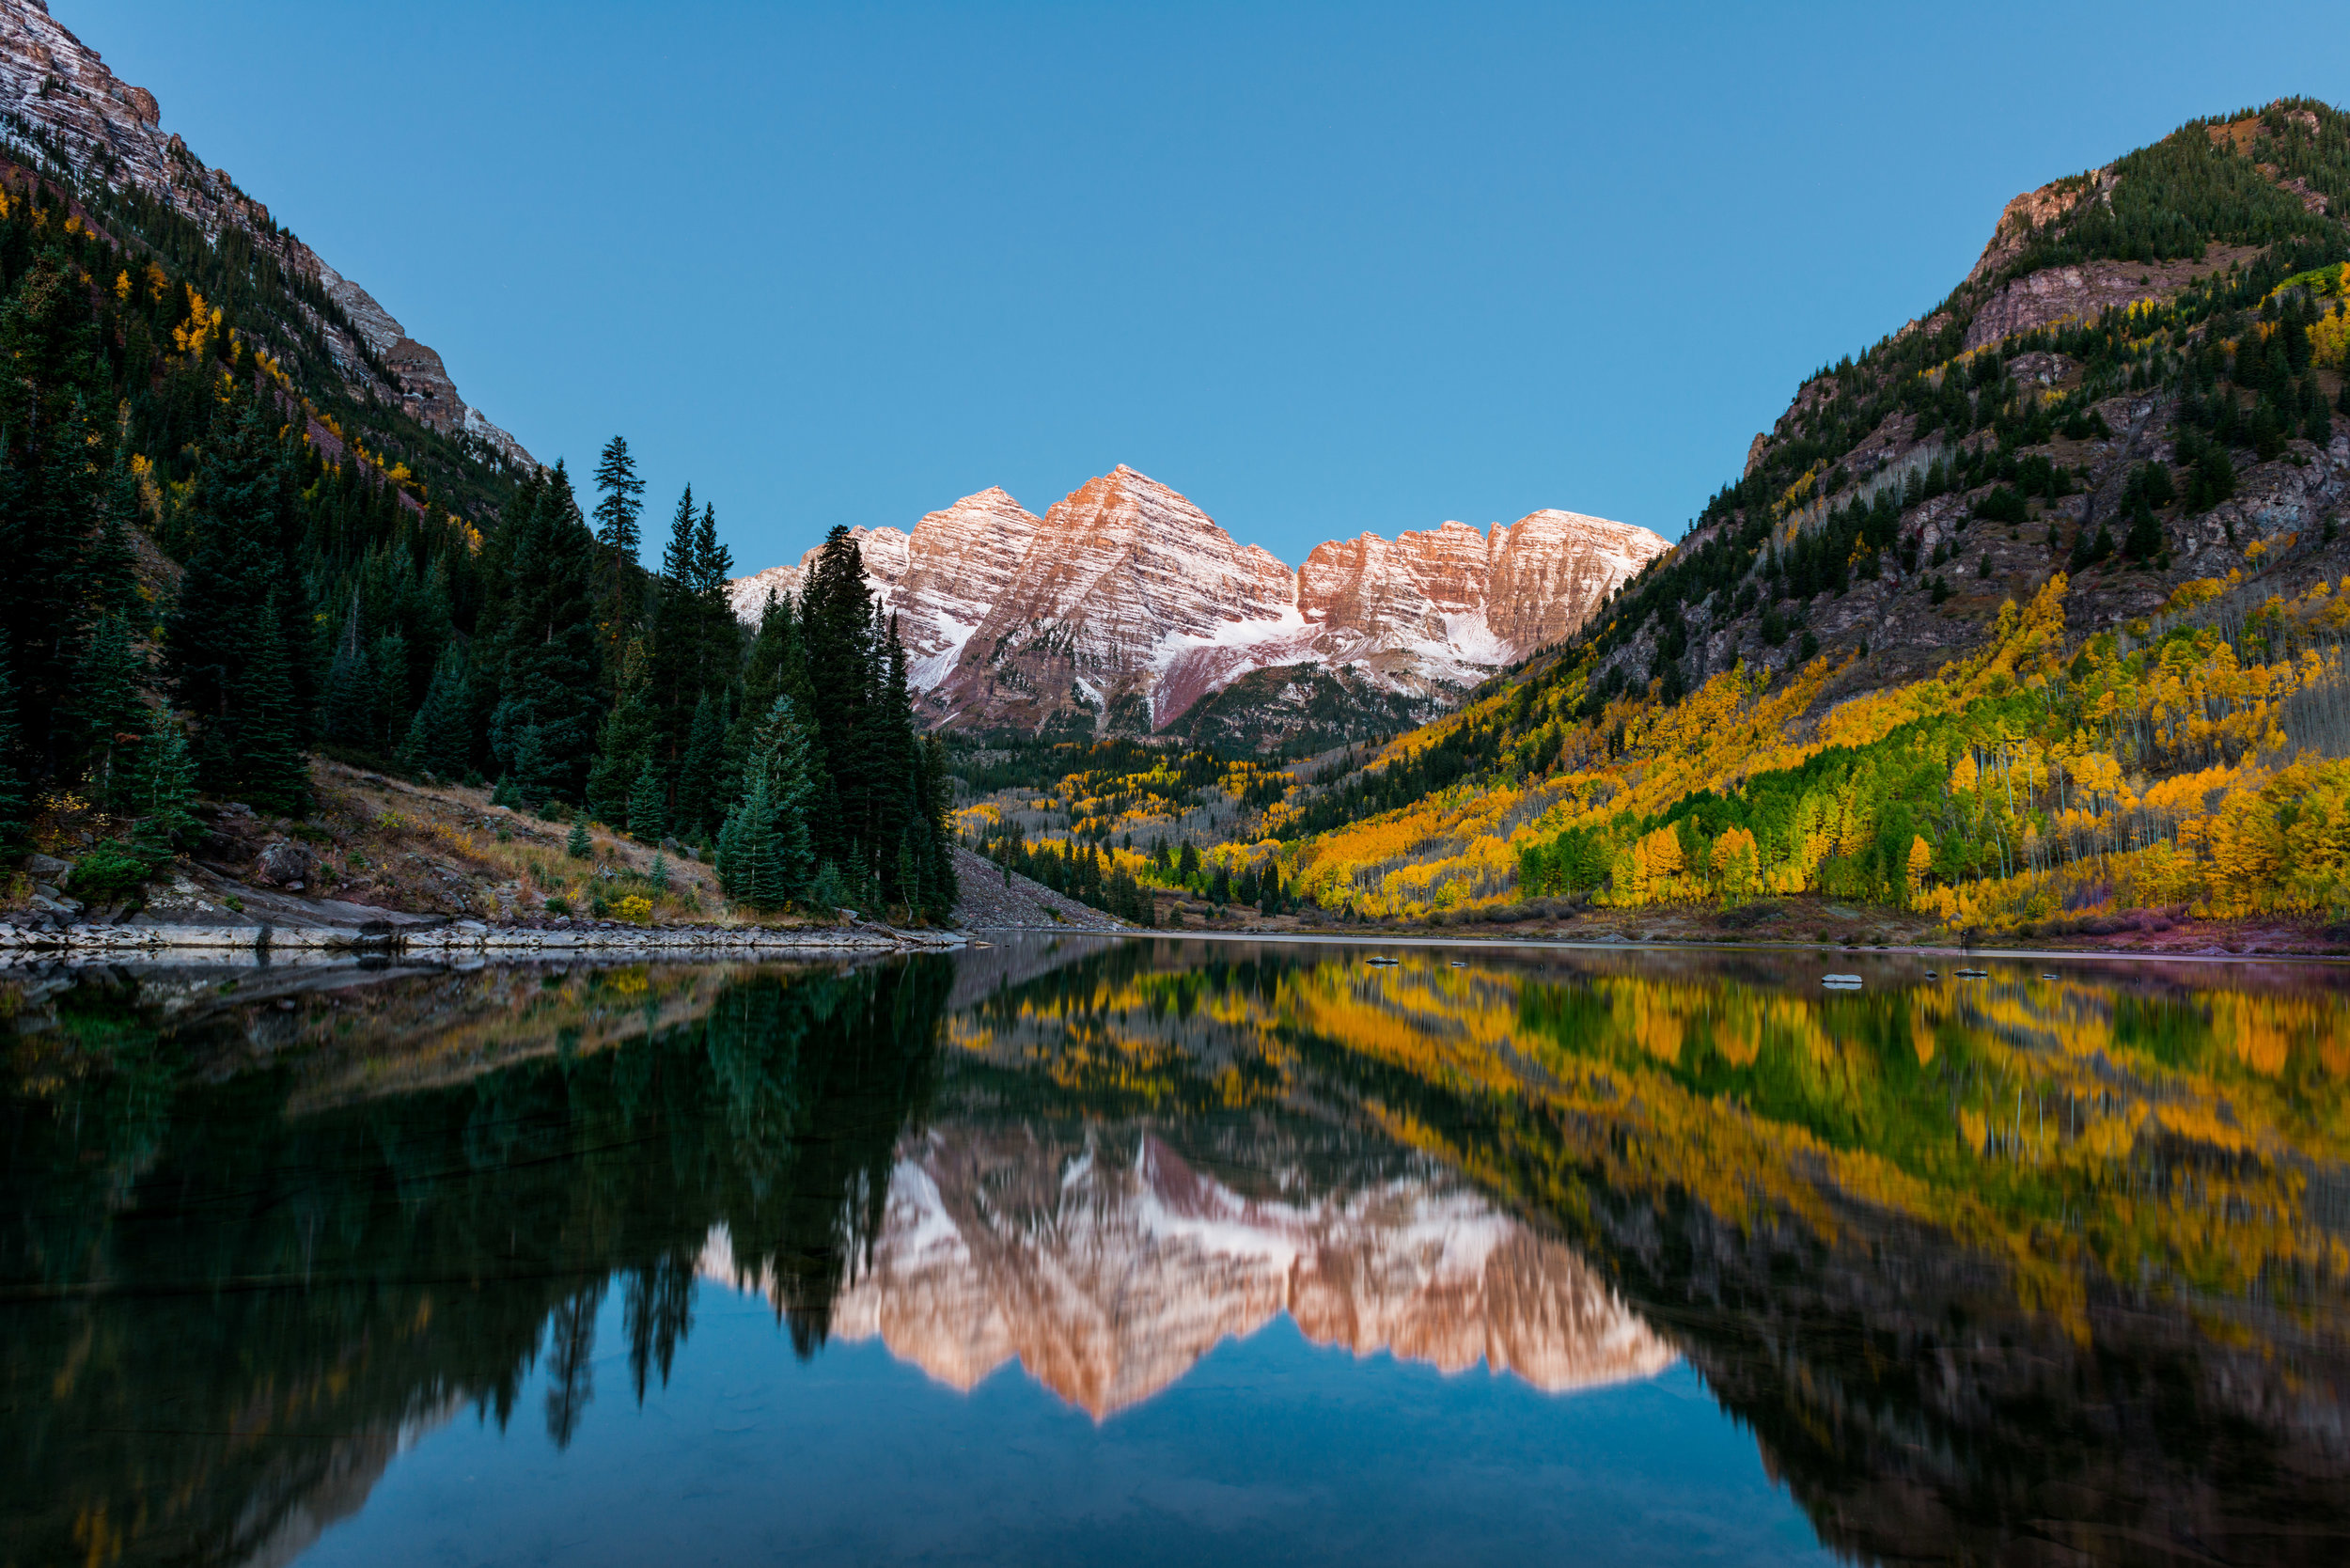 Because I was forced to the left, I didn't get a clear shot of the Maroon Bells. I also did a amateur job of cloning out the other photographers on the right side of the image. In fact, a camera on a tripod is still visible in the image.